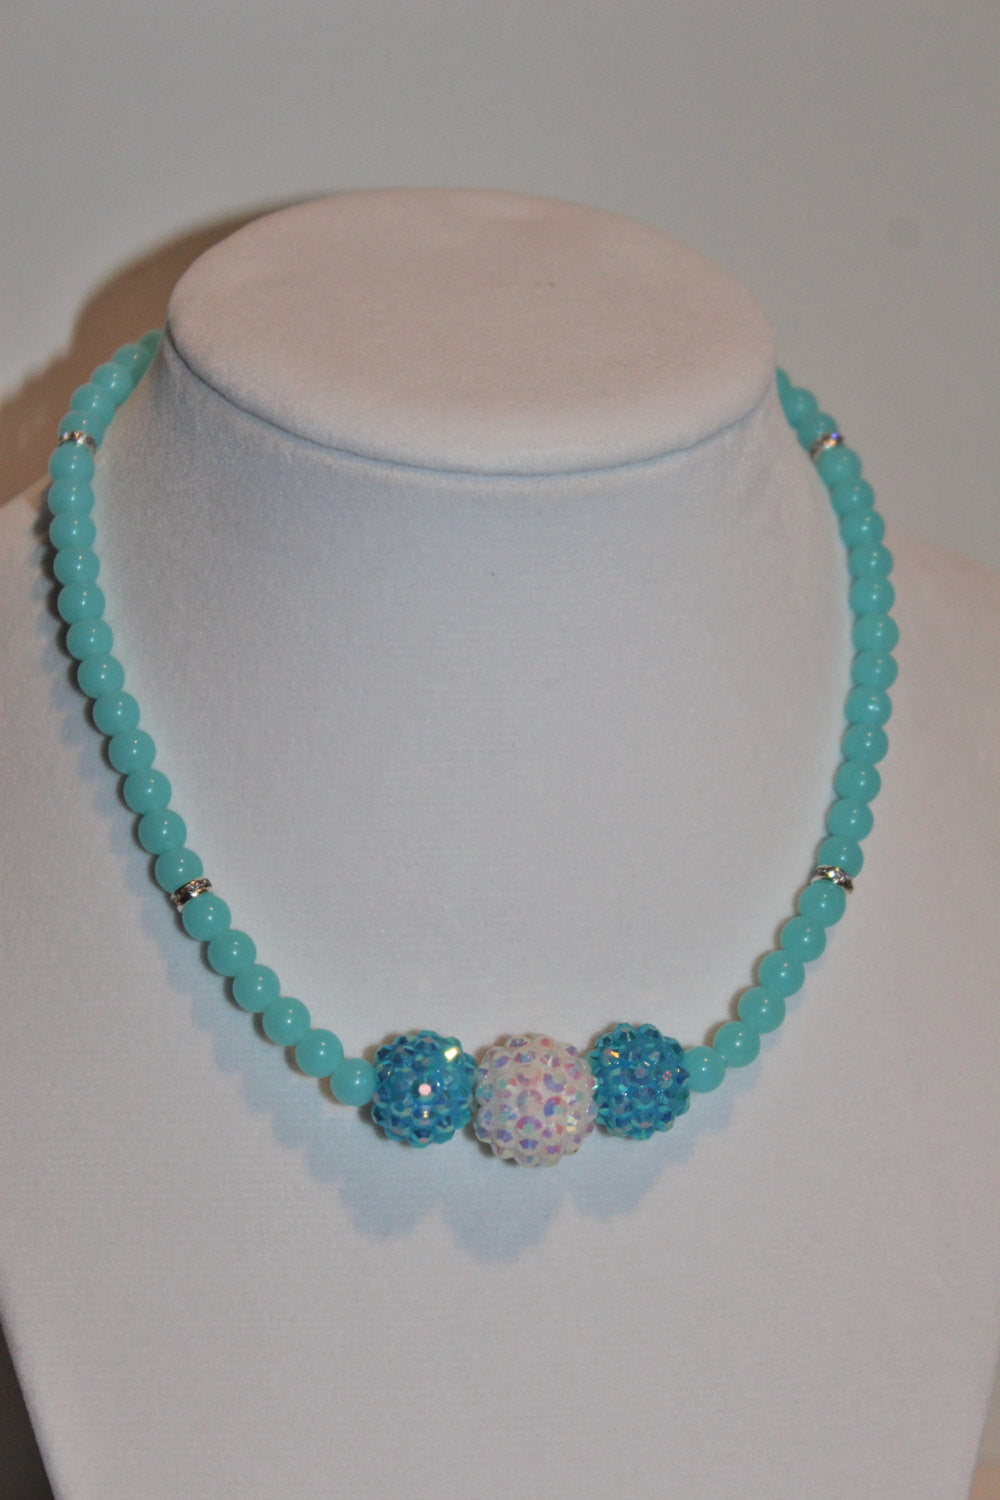 Children's Jewelry Frozen Inspired Necklace